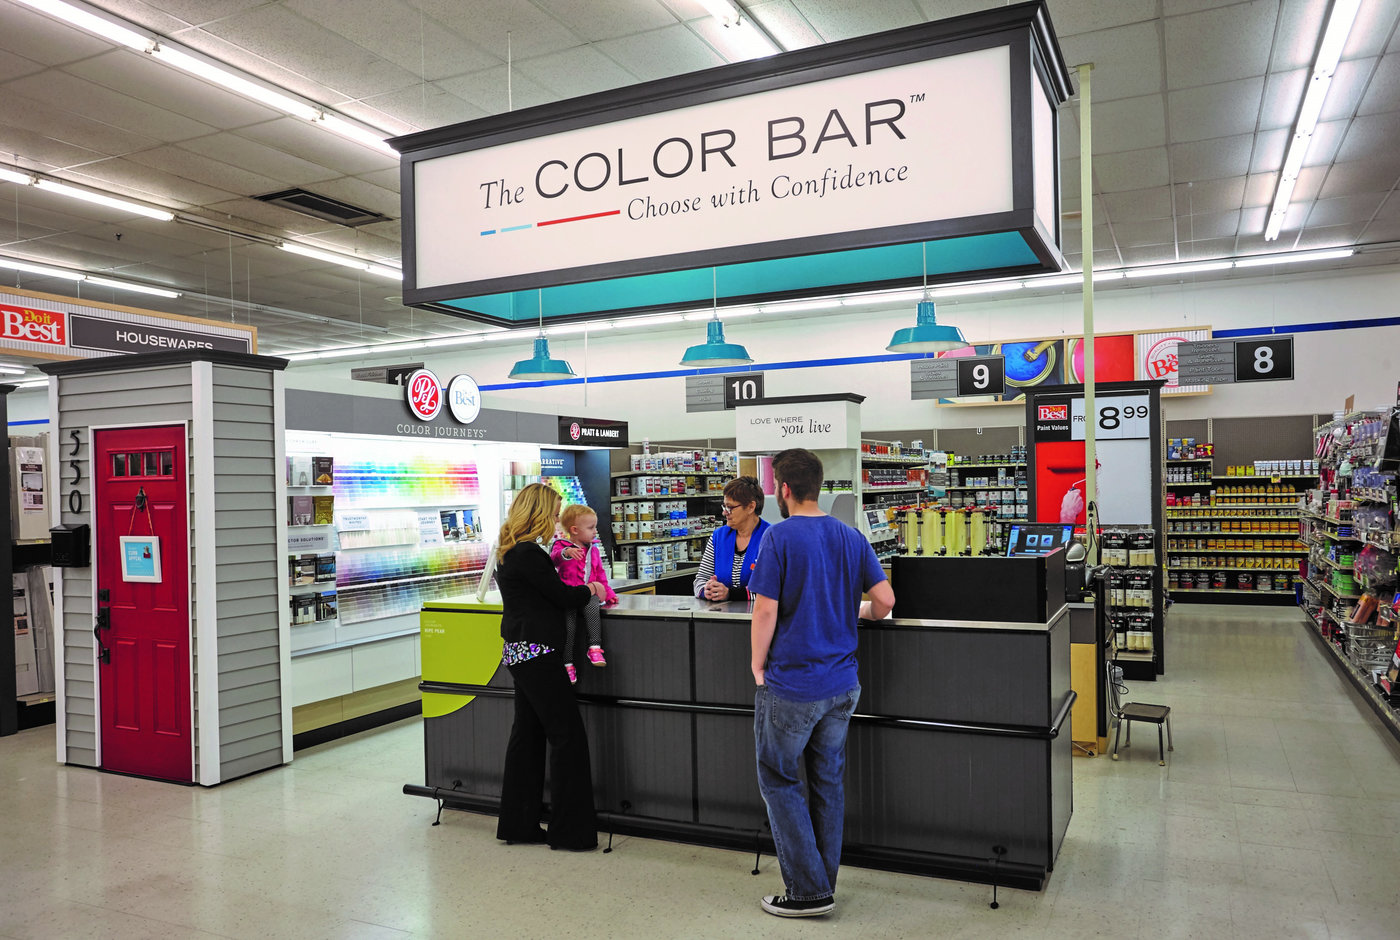 Paint sales are up 10 percent since adding The Color Bar in 2017.